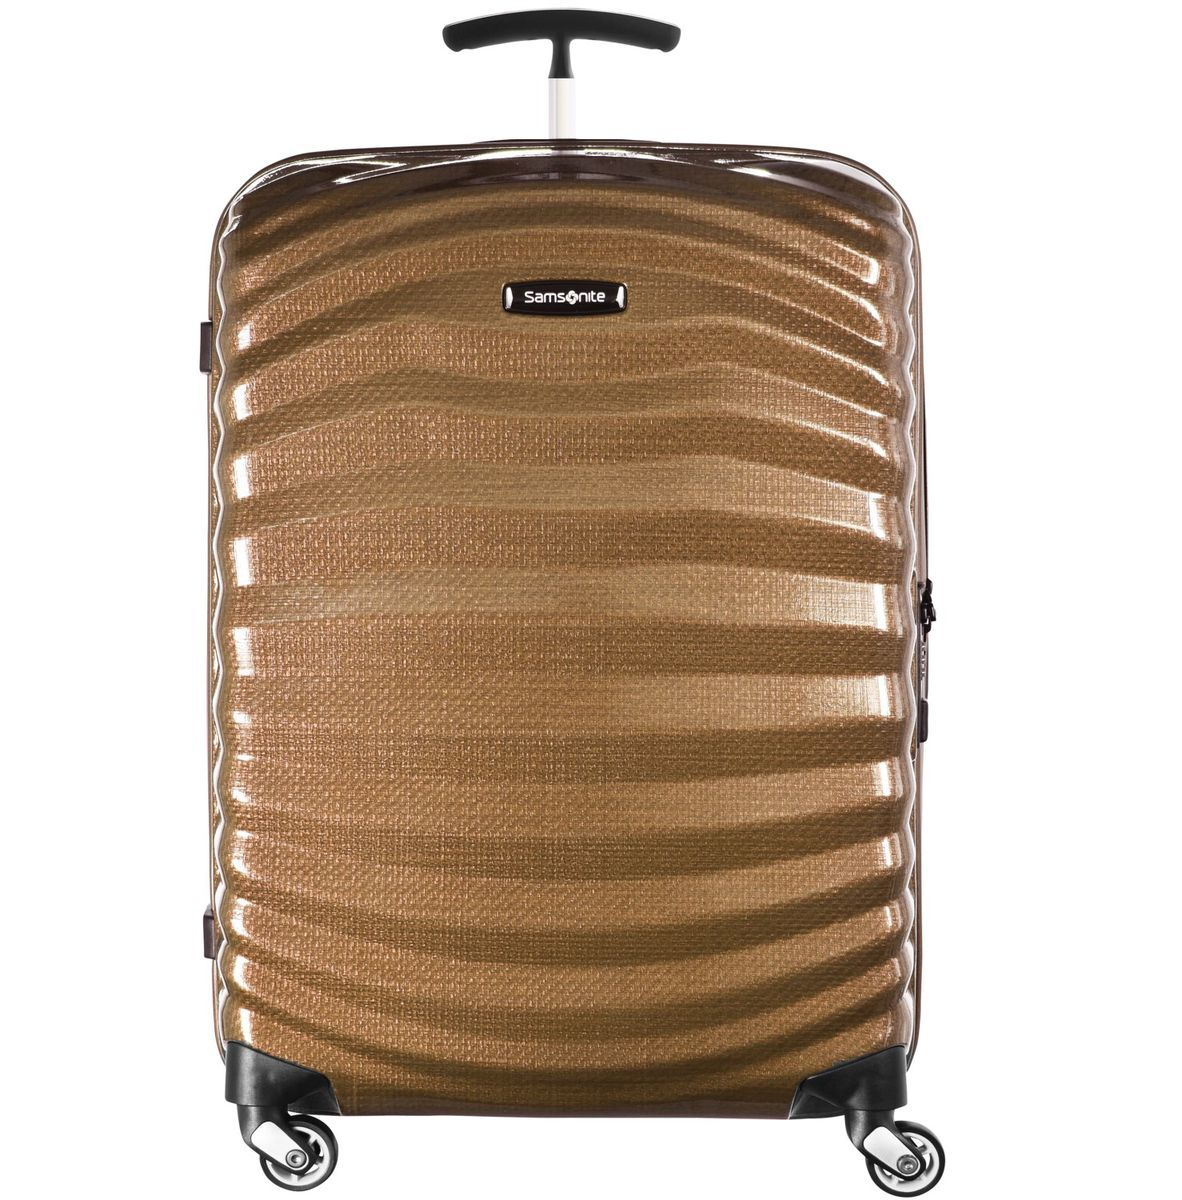 Samsonite Lite-Shock Spinner 4-Rollen Trolley 81 cm, sand